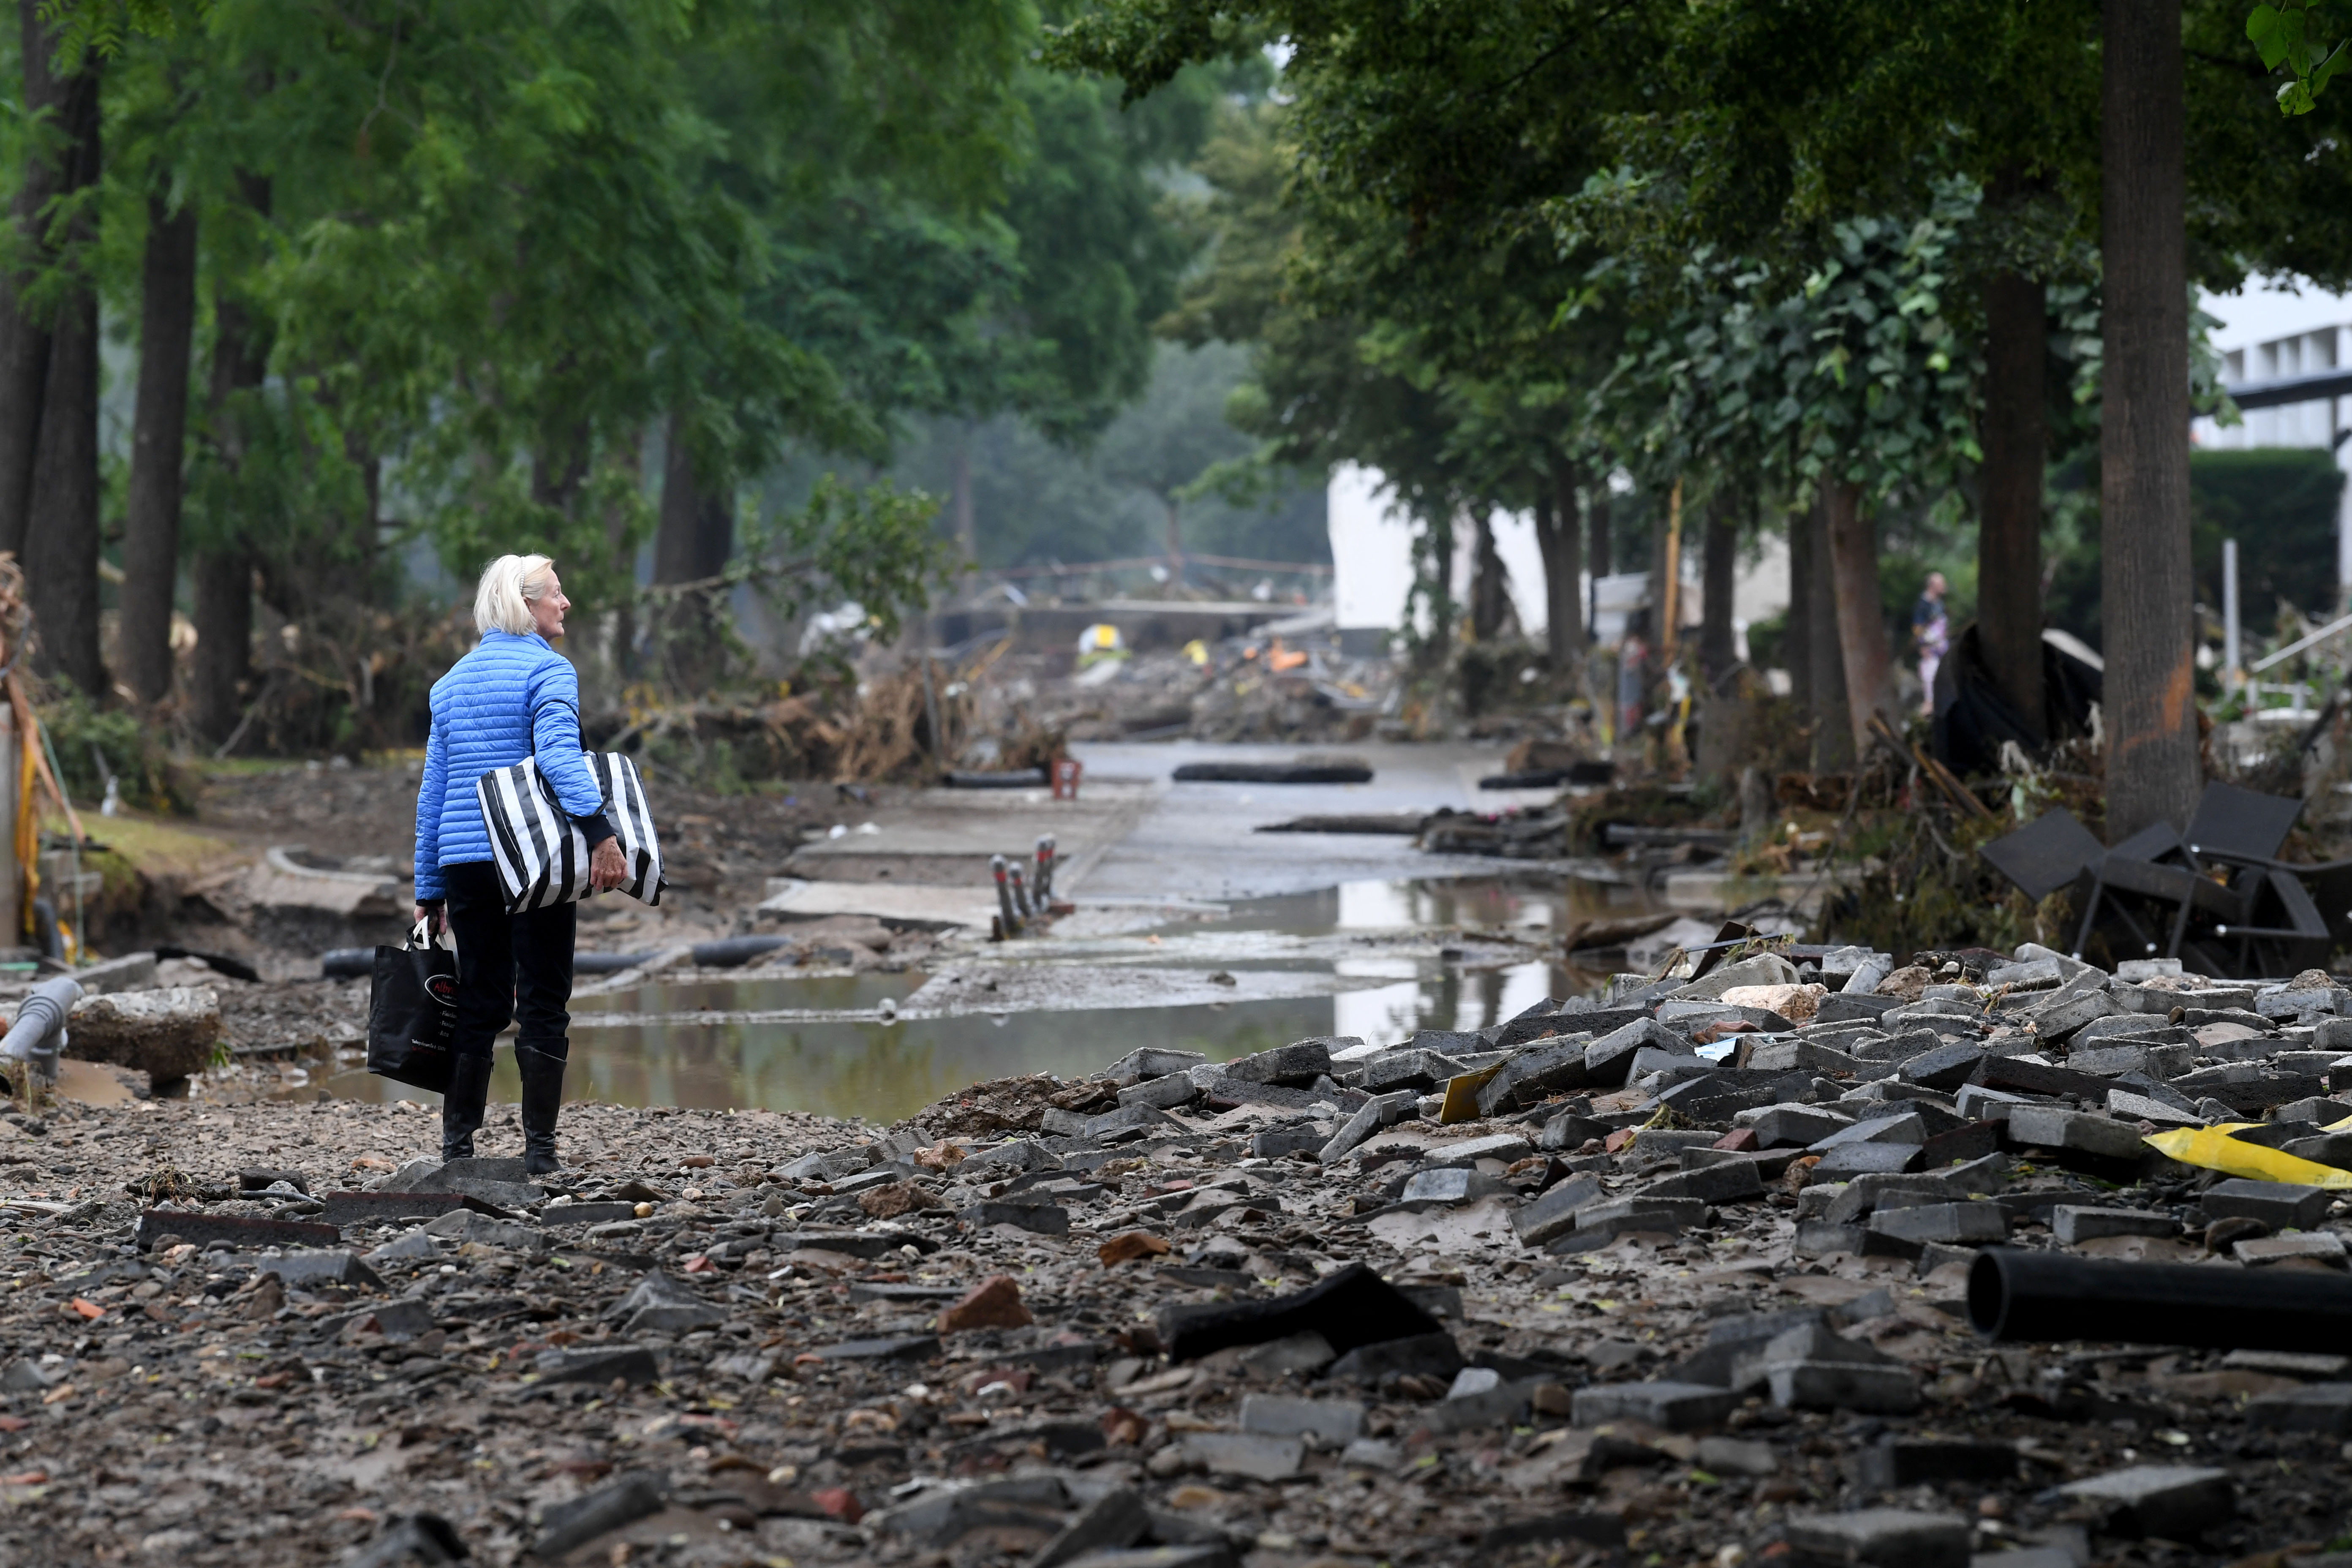 A woman carries bags in a devastated street after the floods caused major damage in Bad Neuenahr-Ahrweiler, western Germany, on July 16.